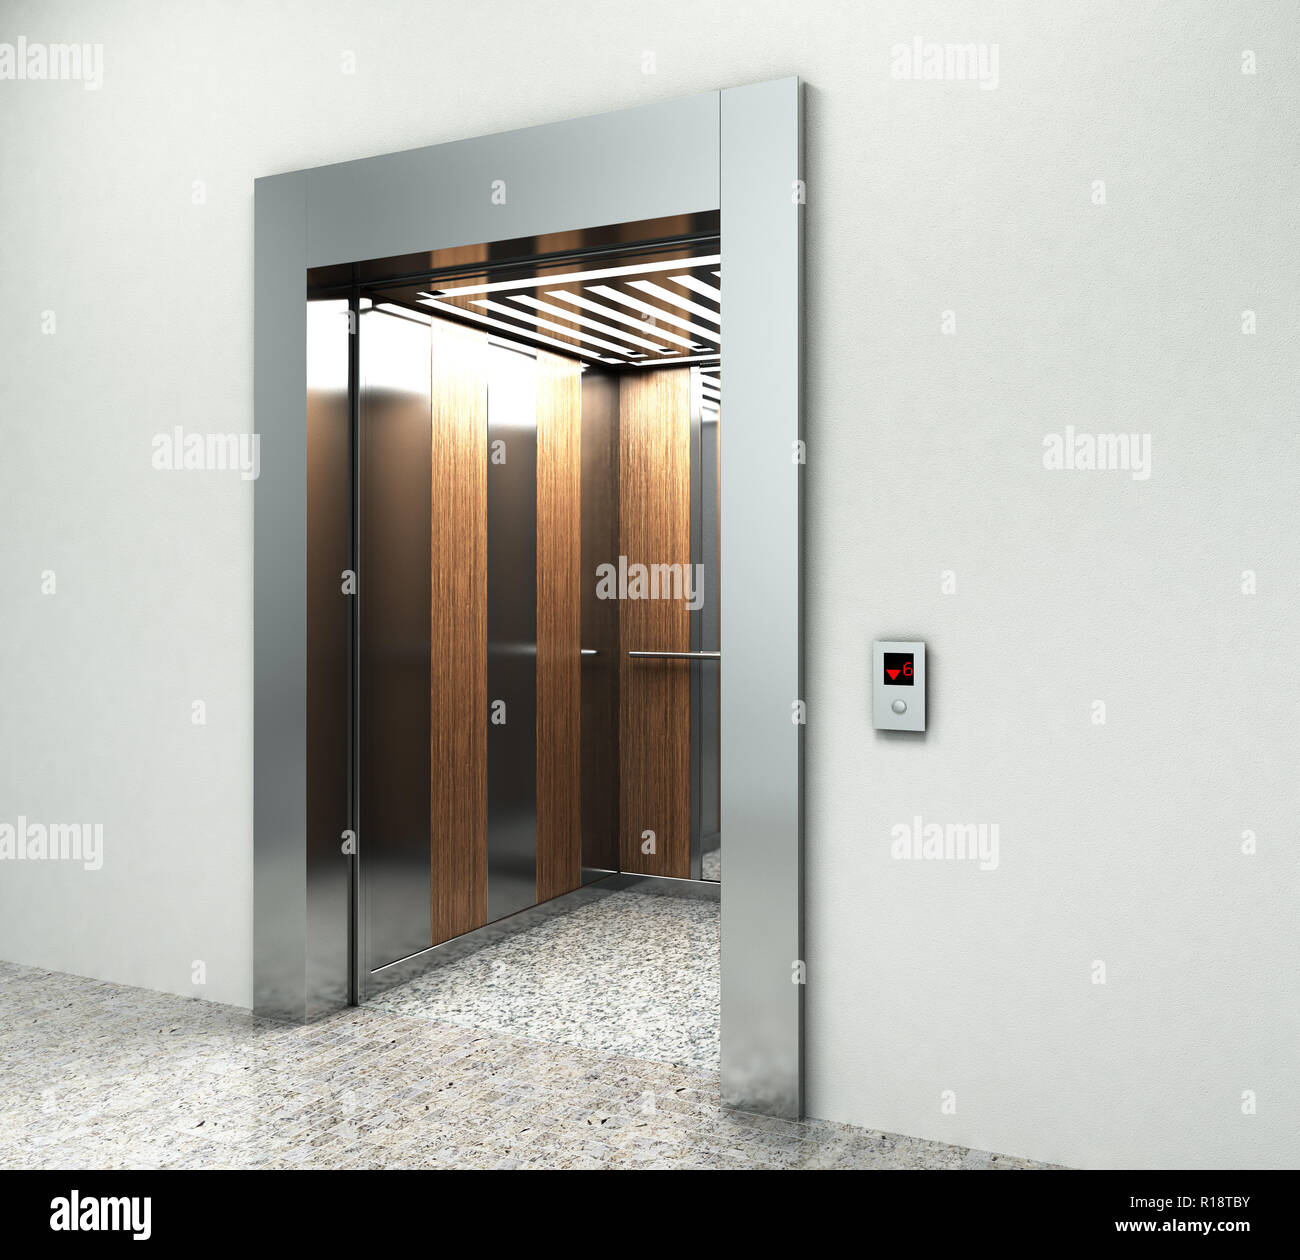 Realistic Empty Elevator Hall Interior With Waiting Lift Marble Floor Ceiling Window And Grey Walls 3d Render Stock Photo Alamy